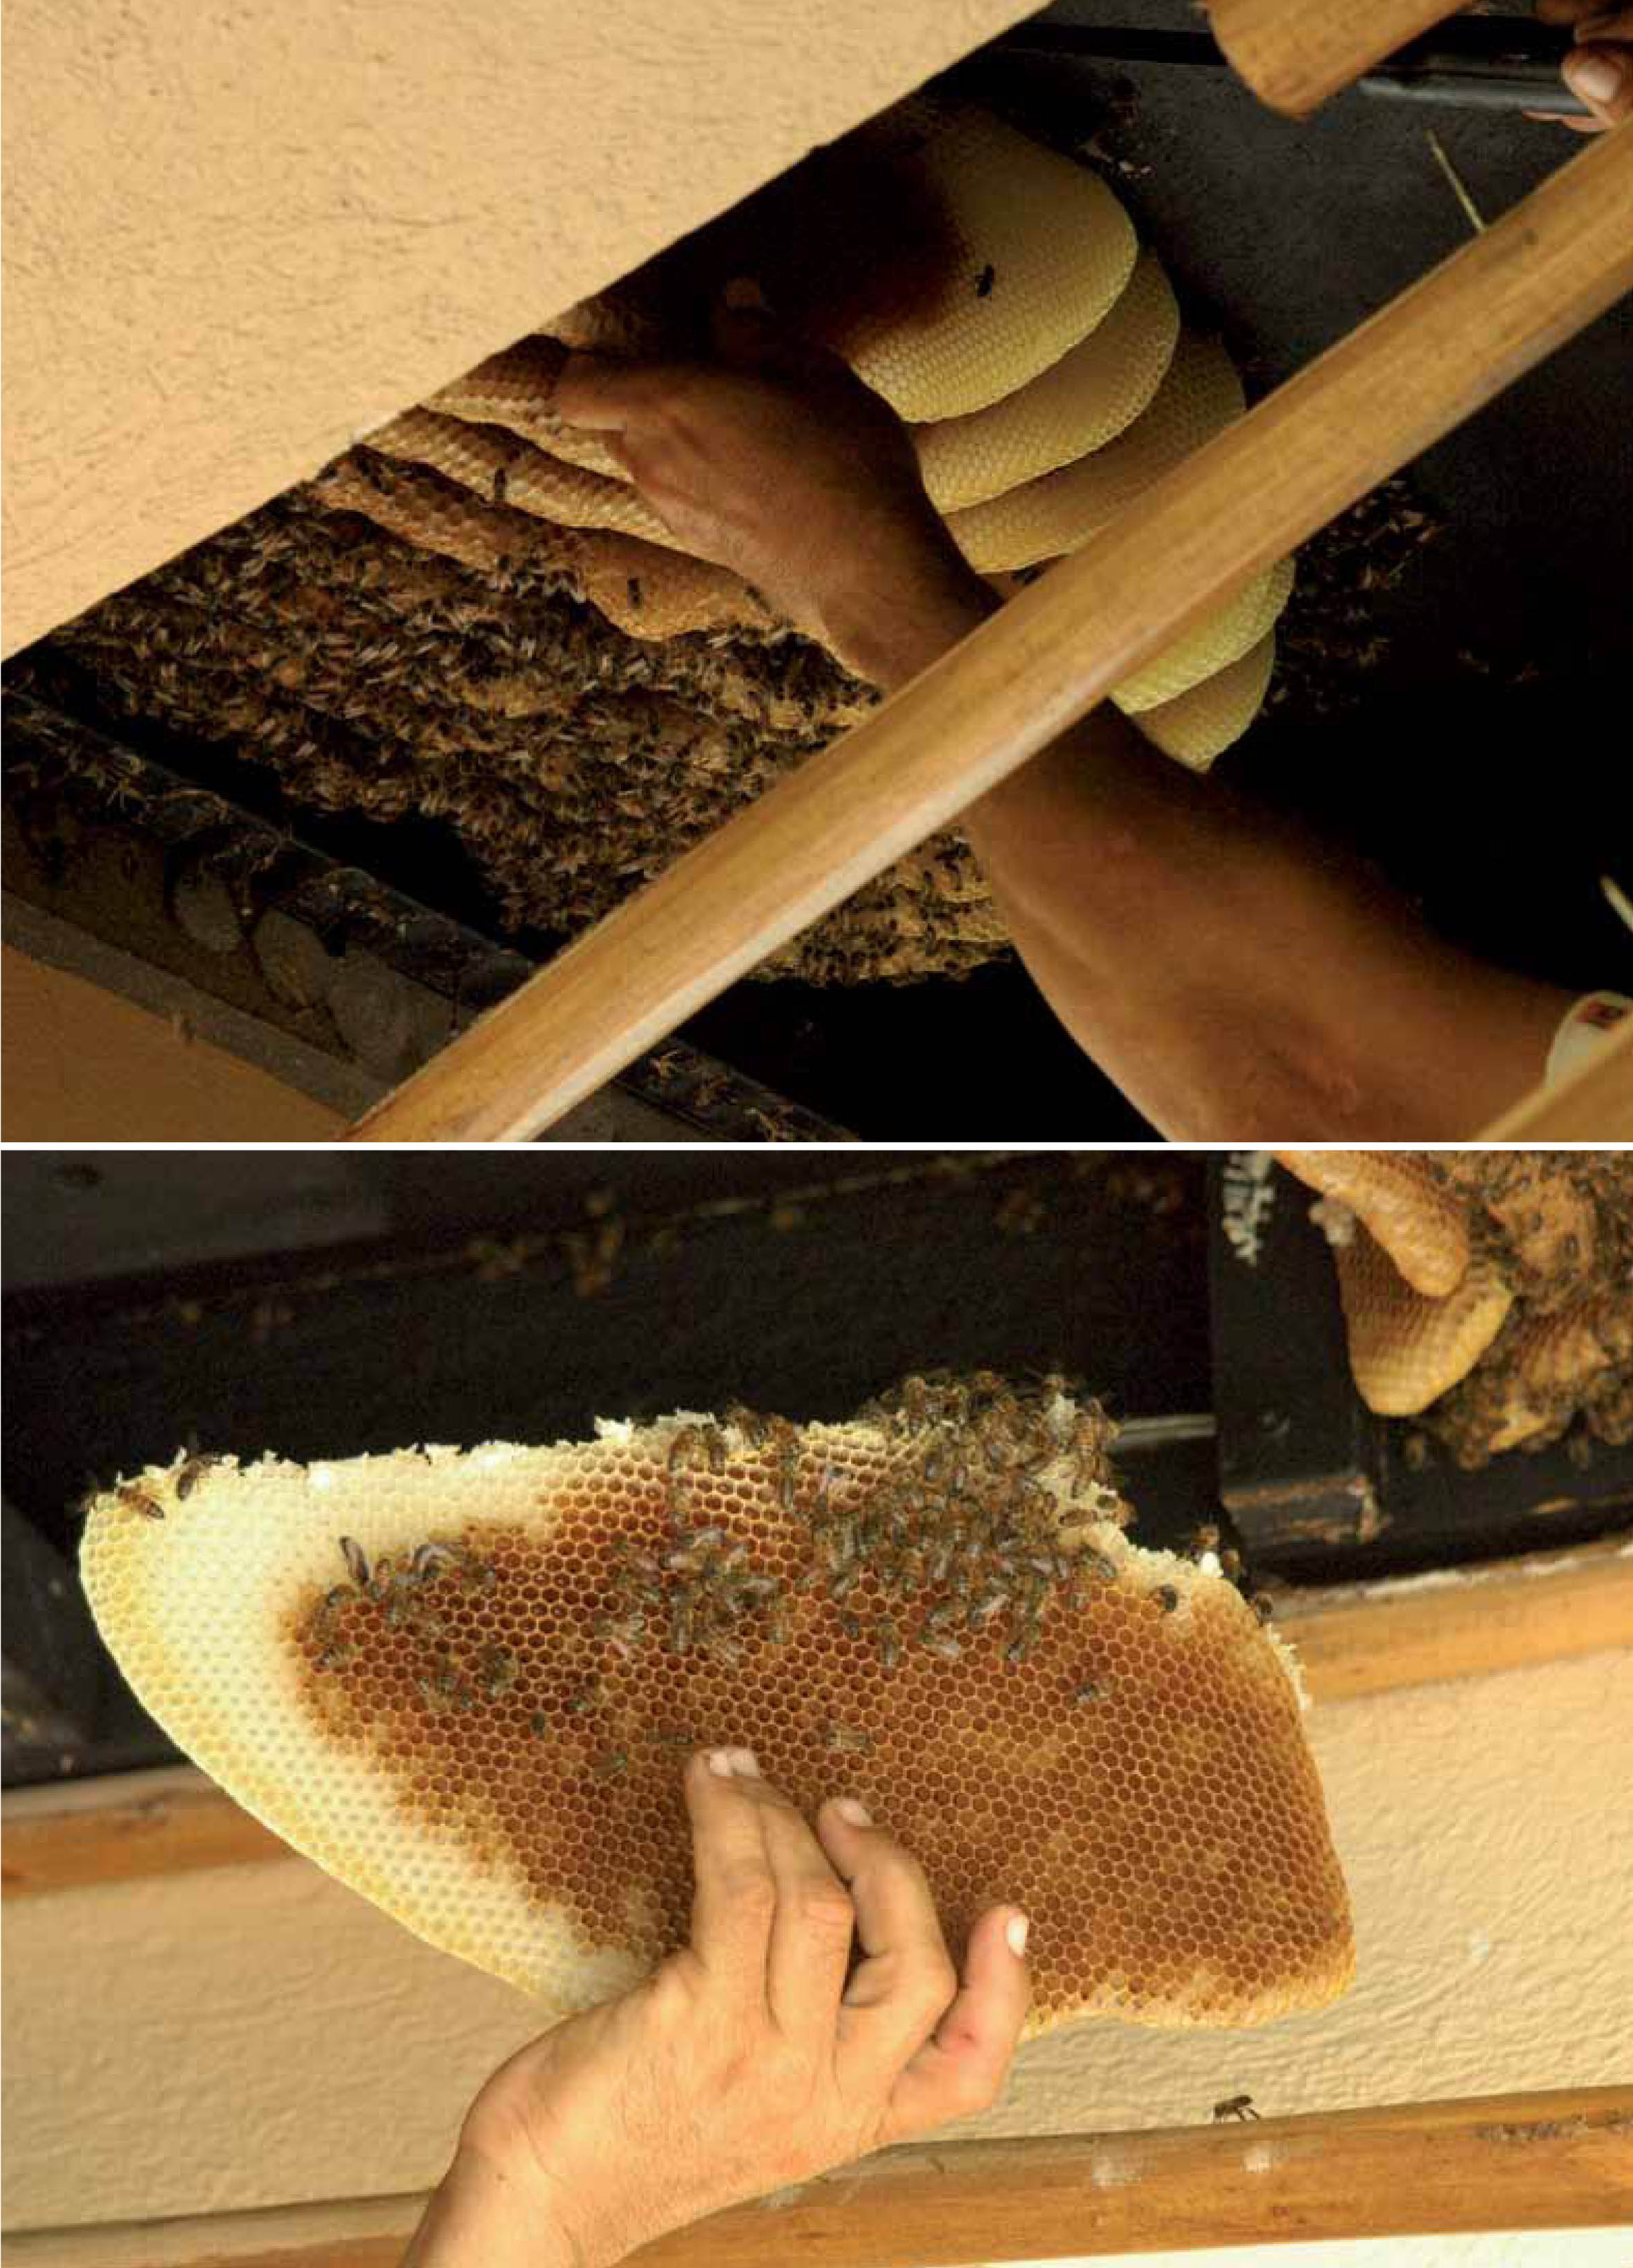 Rubio masterfully removes honeycomb from the bees that inadvertently invade some homes in Puntacana Resort in the Dominican Republic. Photo: Jake Kheel.